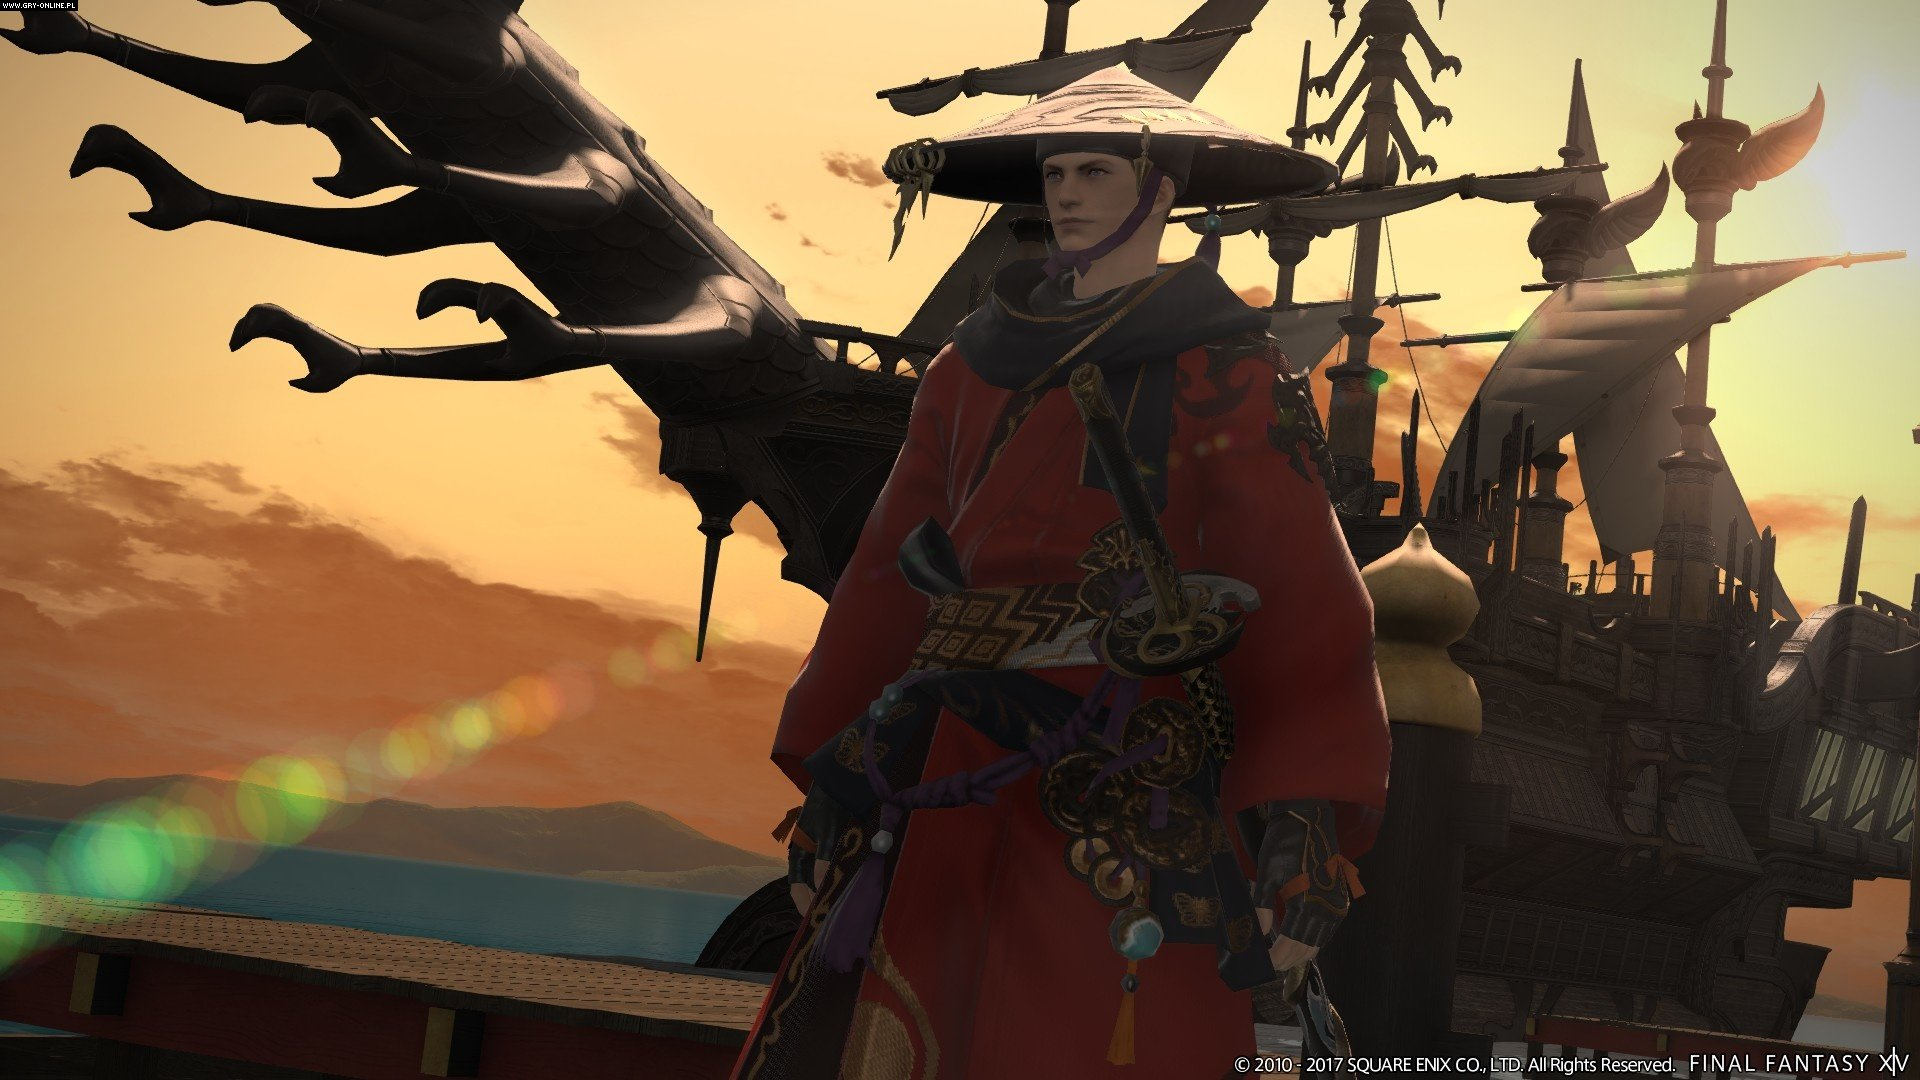 Final Fantasy XIV: Stormblood PS4, PC Gry Screen 145/179, Square-Enix / Eidos